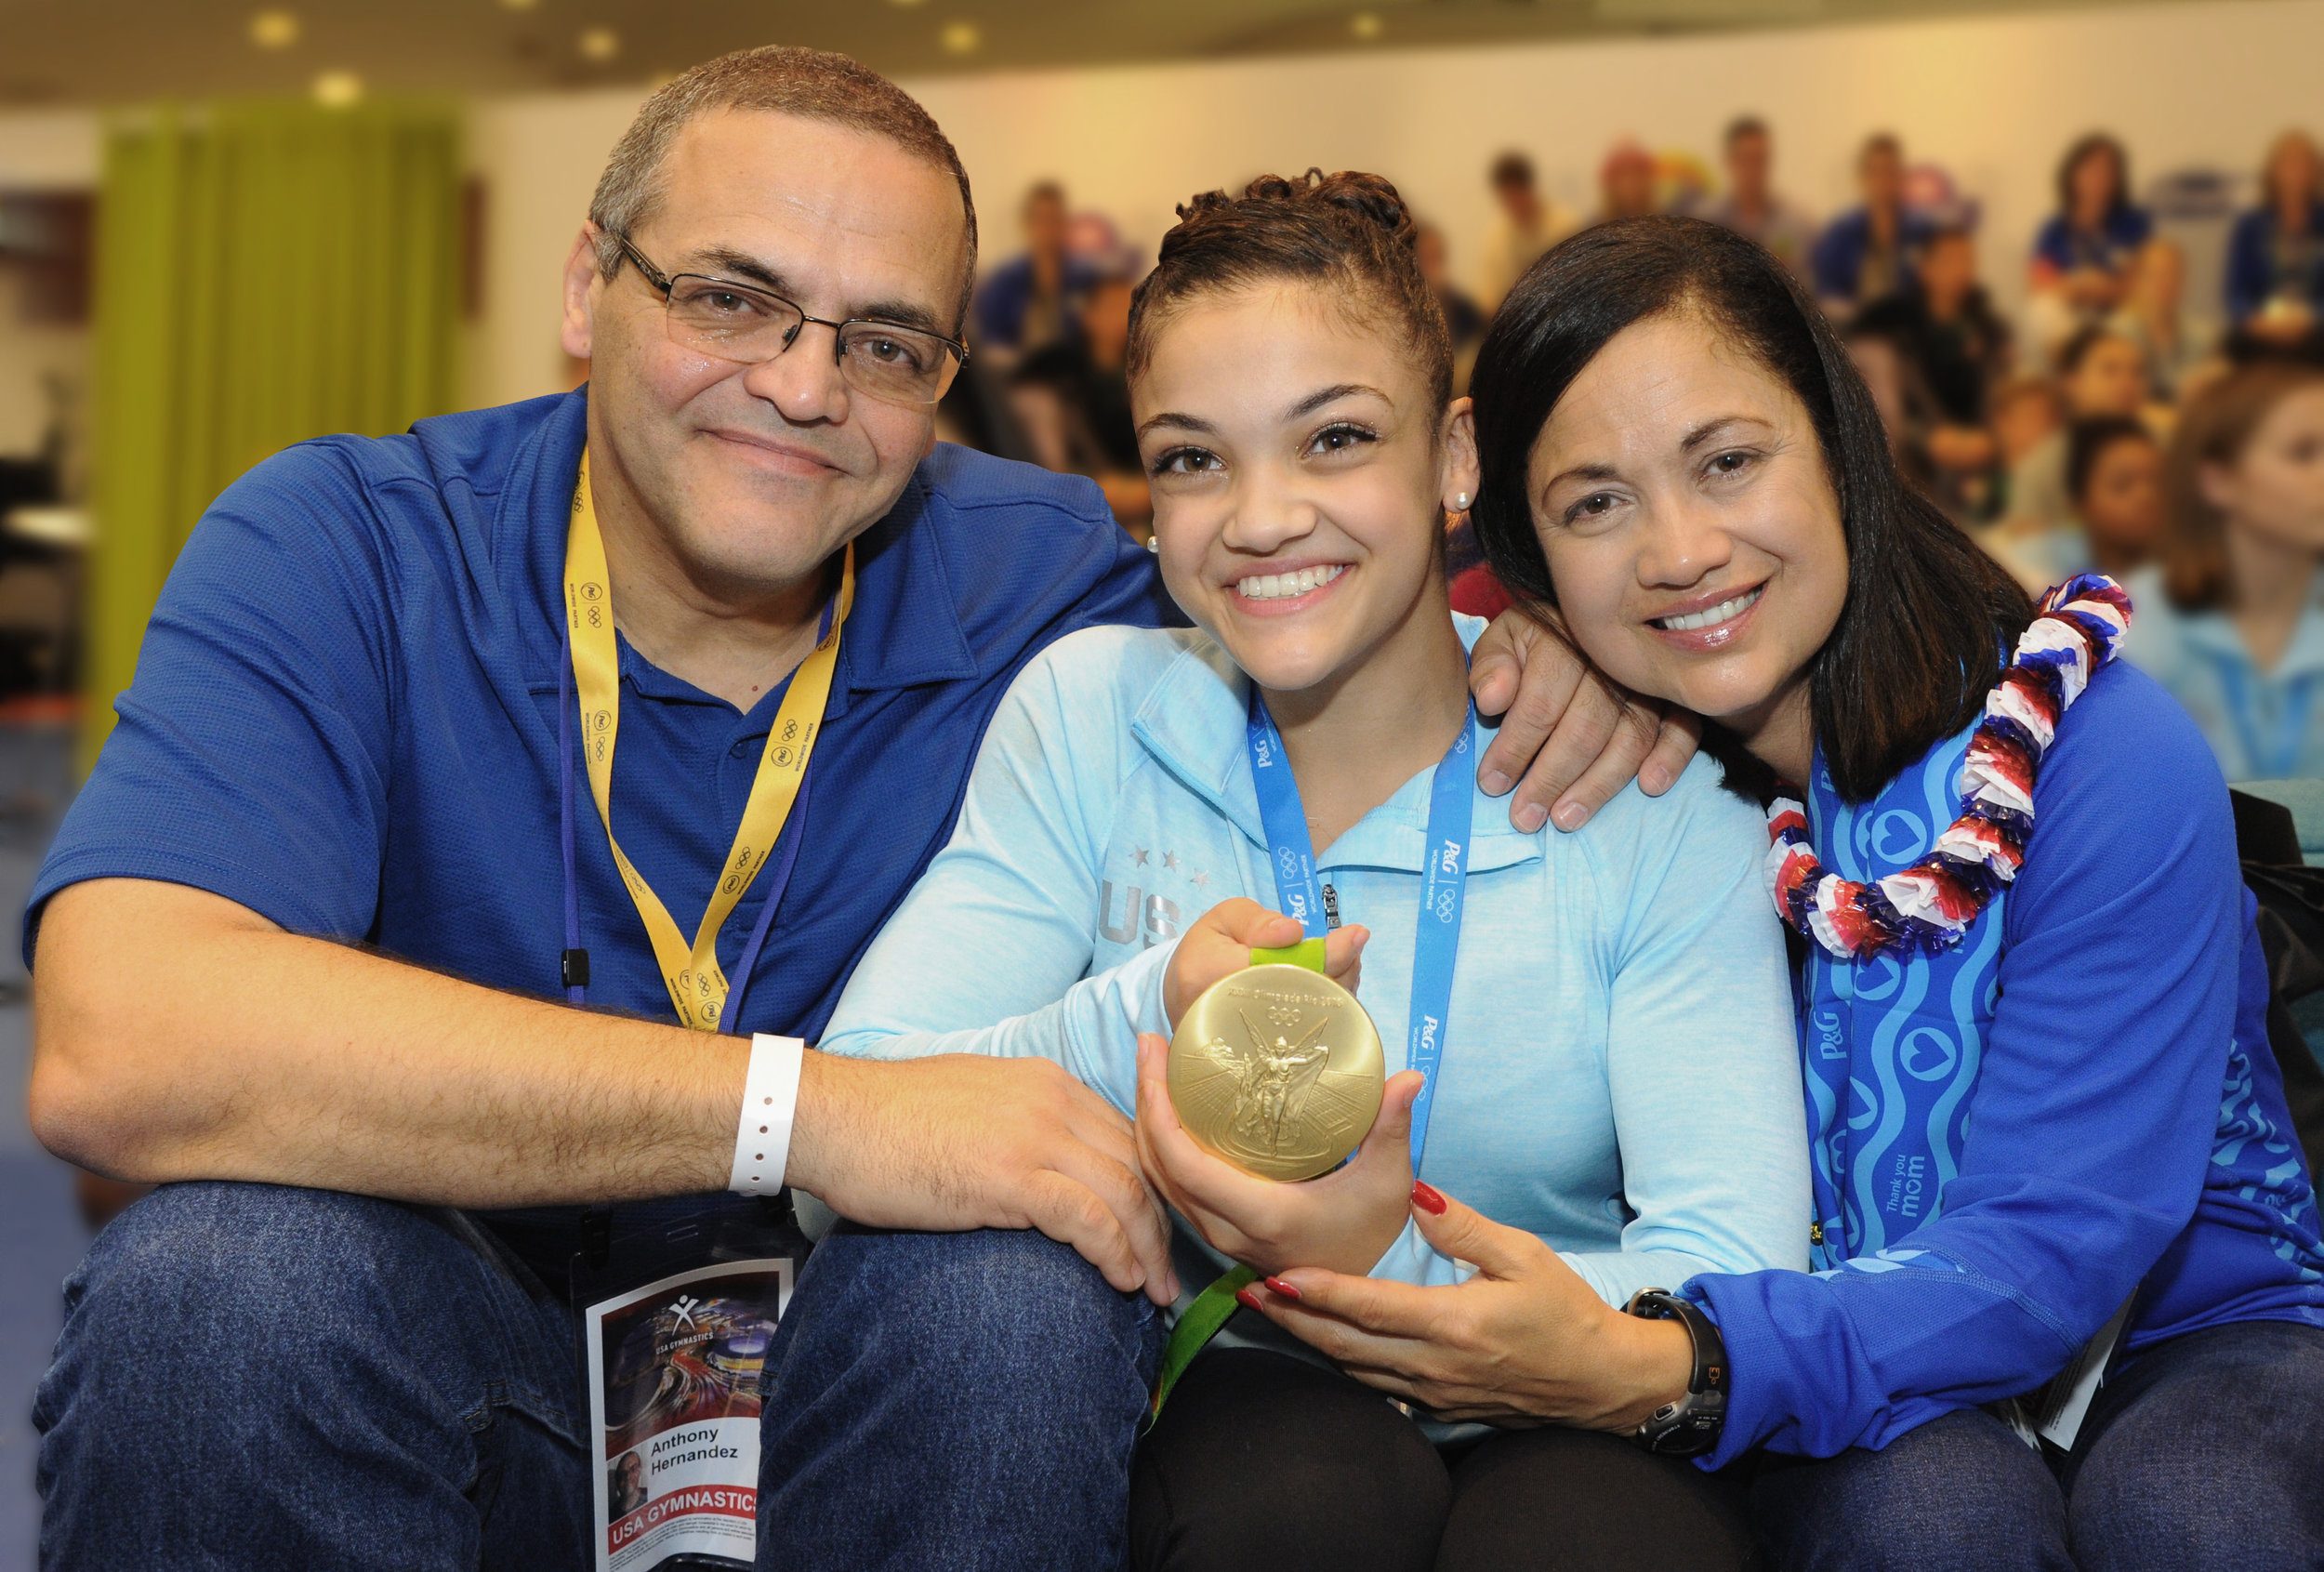 Laurie Hernandez, U.S. Olympic Gymnastics Champion, joins the P&G family as Crest® and Orgullosa ambassador. P&G,Worldwide Olympic Partner, also welcomes her mom, Wanda Hernandez, to the 'Thank You Mom' family.